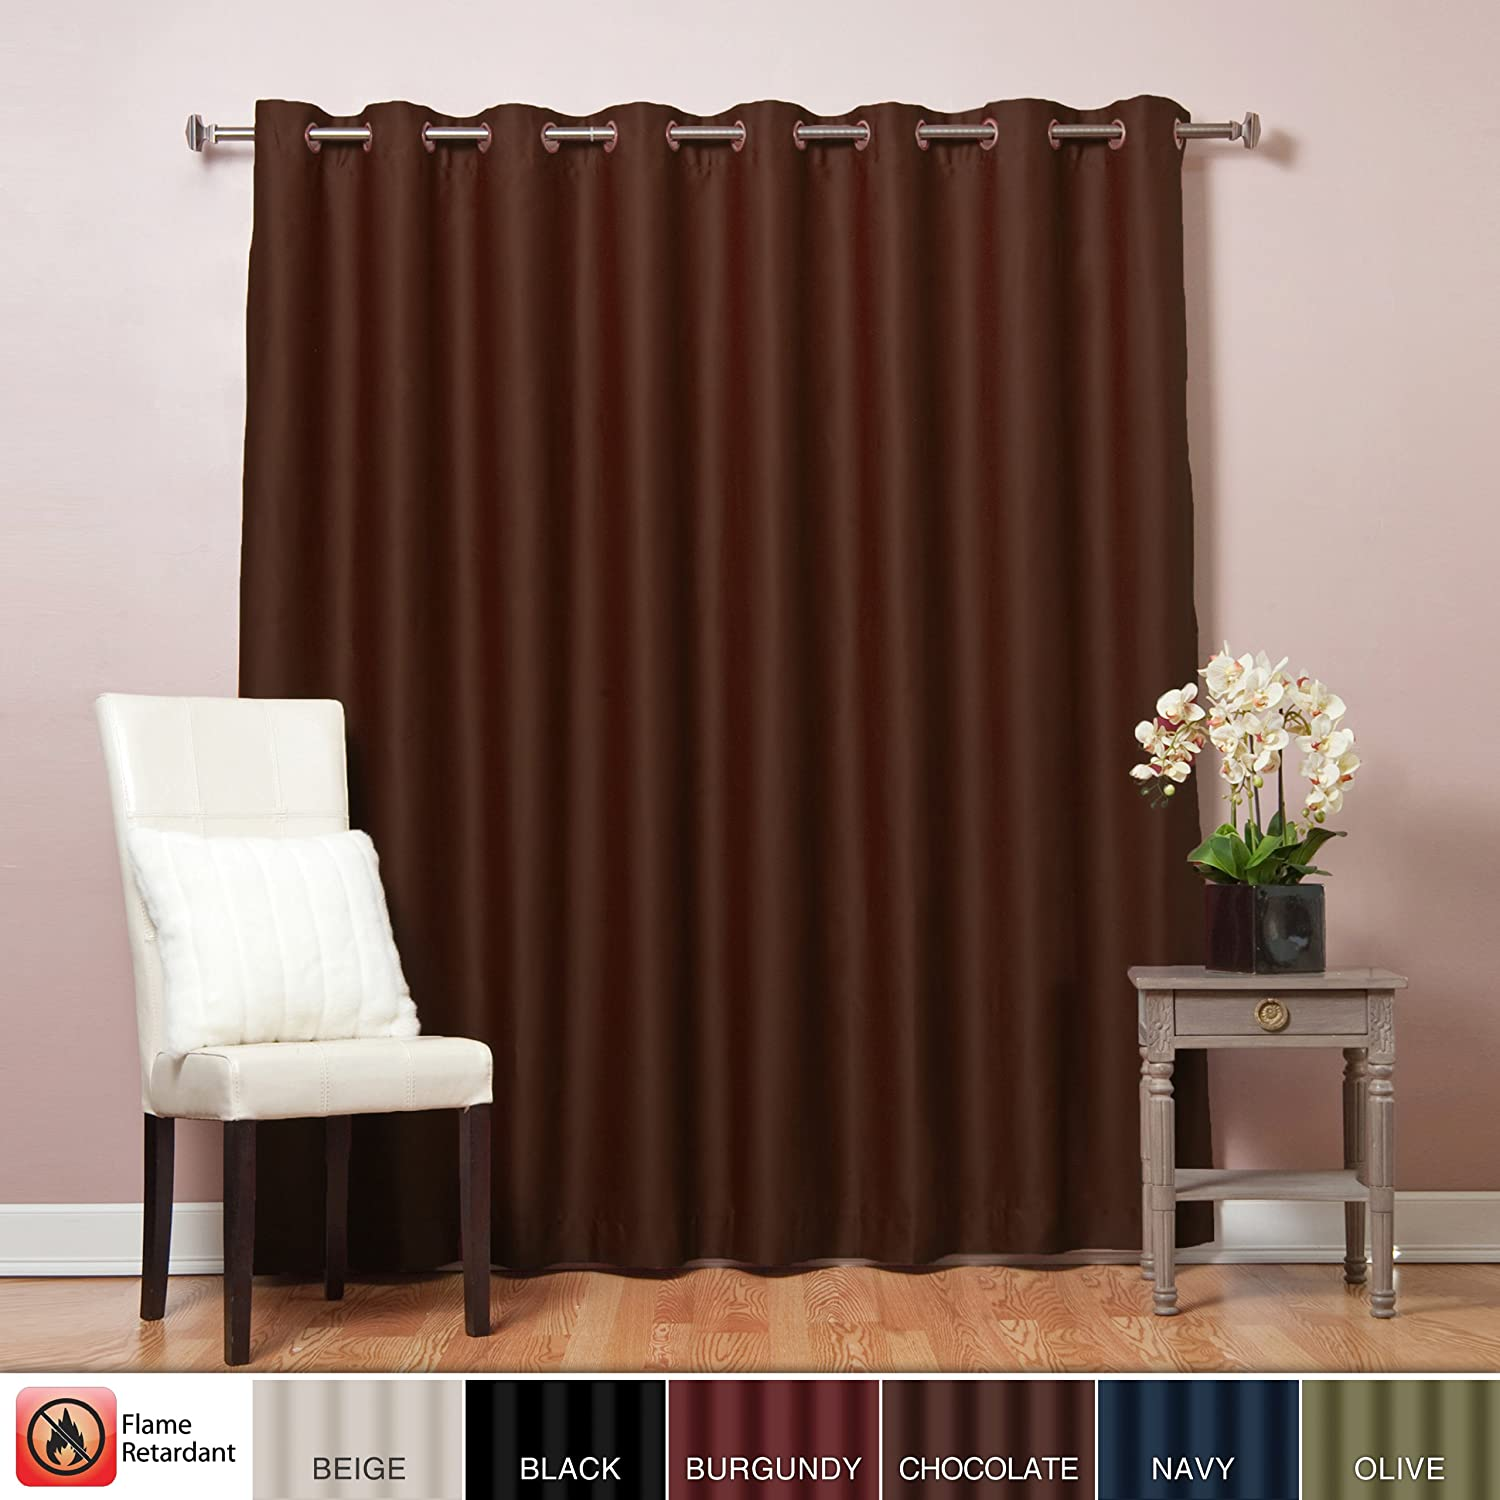 Blackout Curtains For Media Room Blackout Curtains for Pa